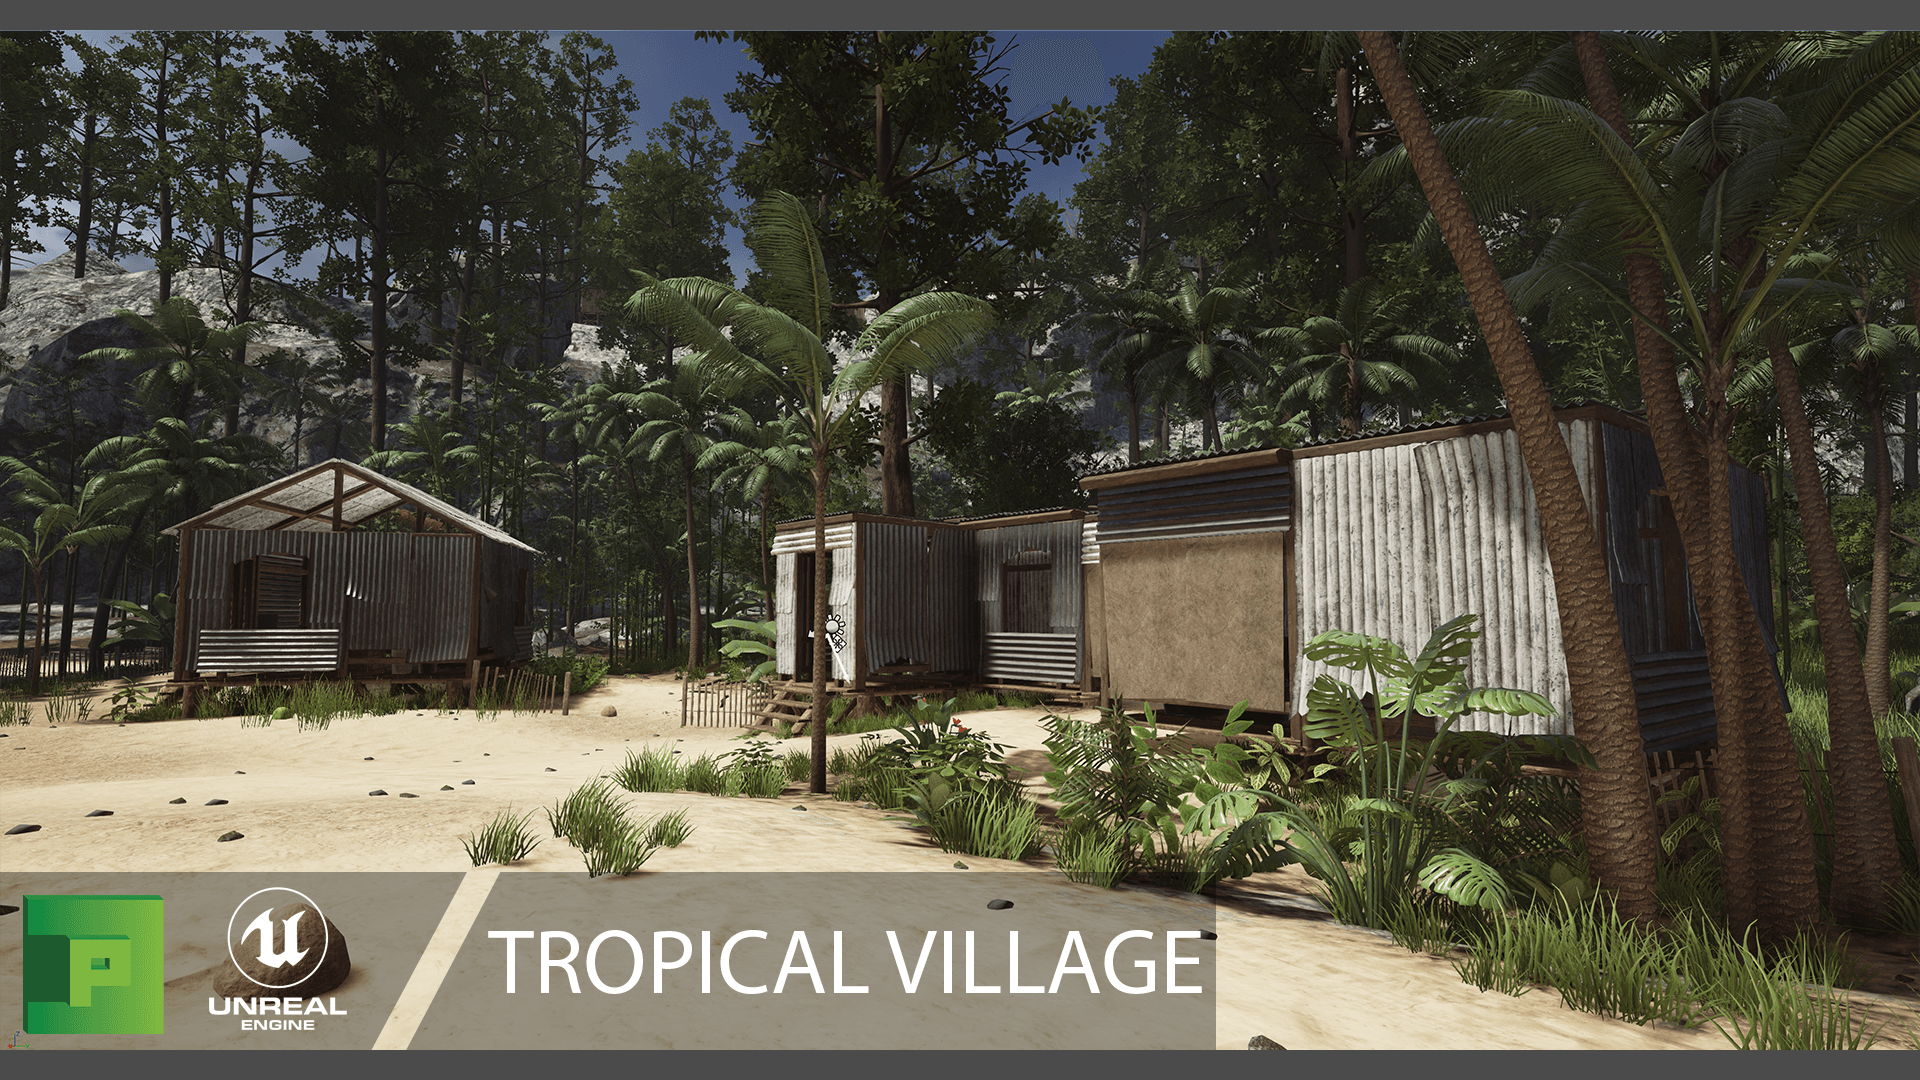 TropicalVillage_05